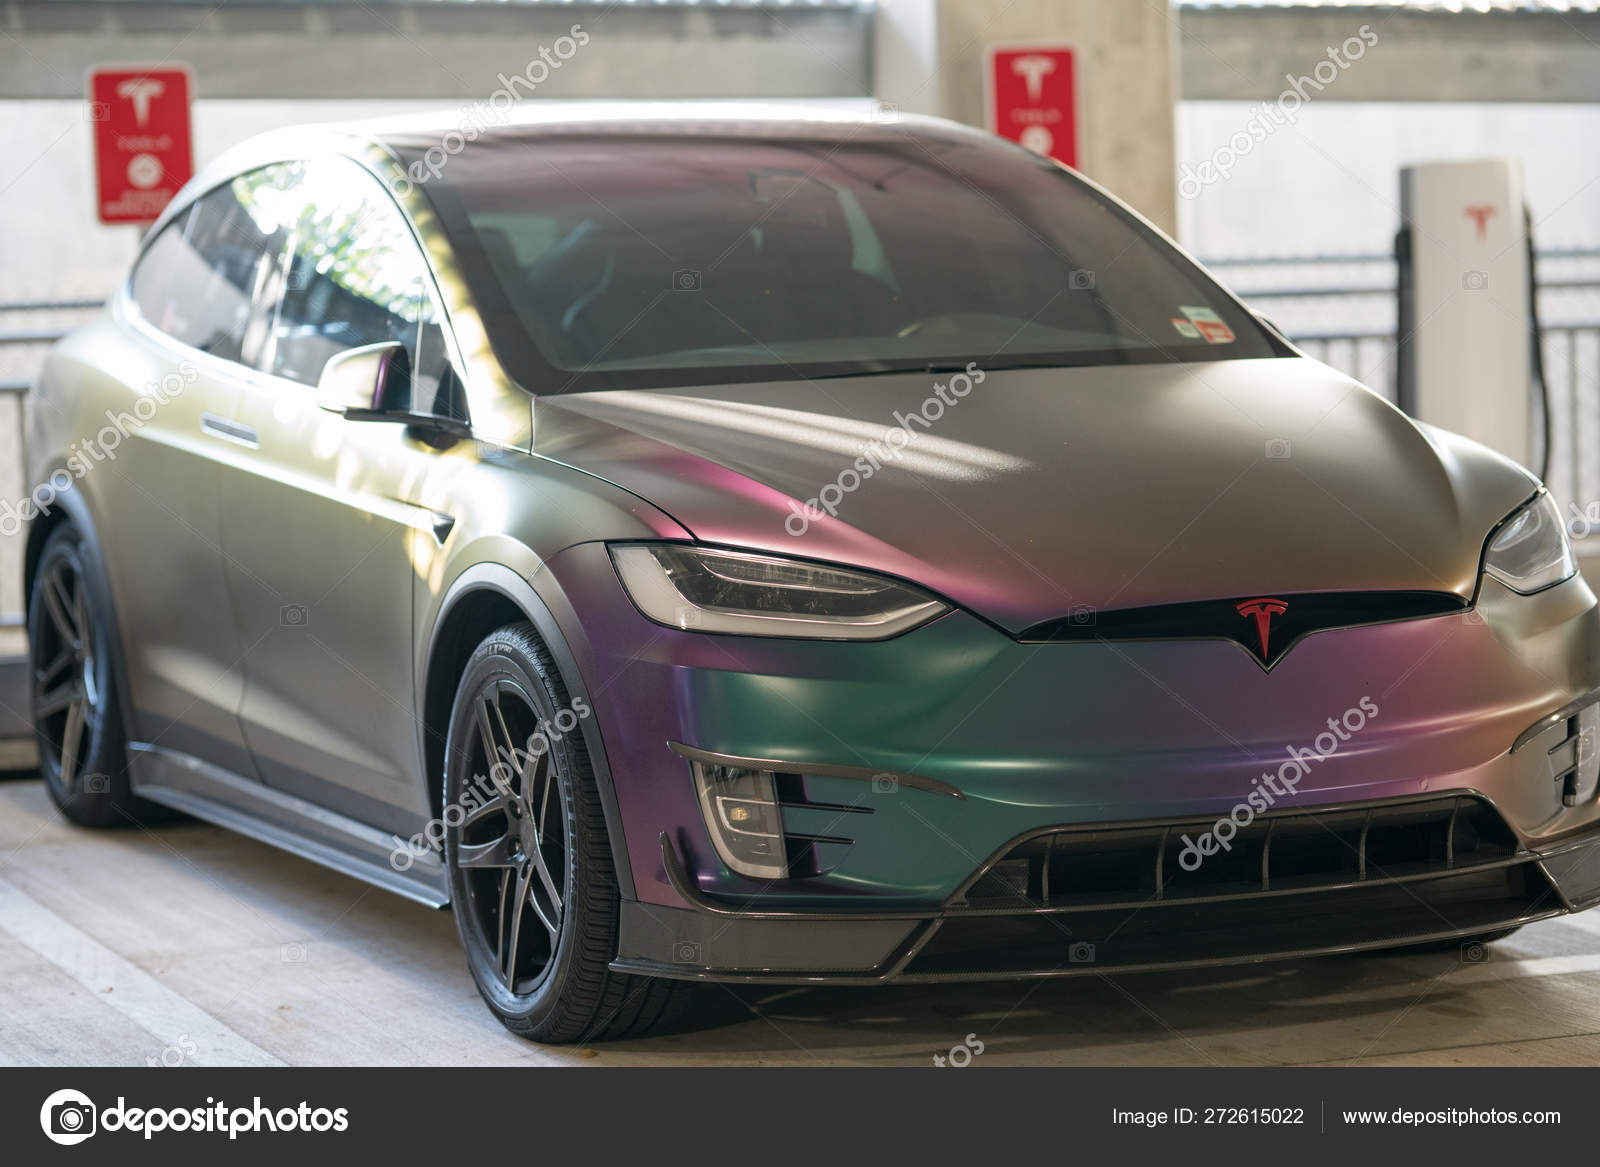 Tesla Model x with galaxy color wrapping paint – Stock Editorial